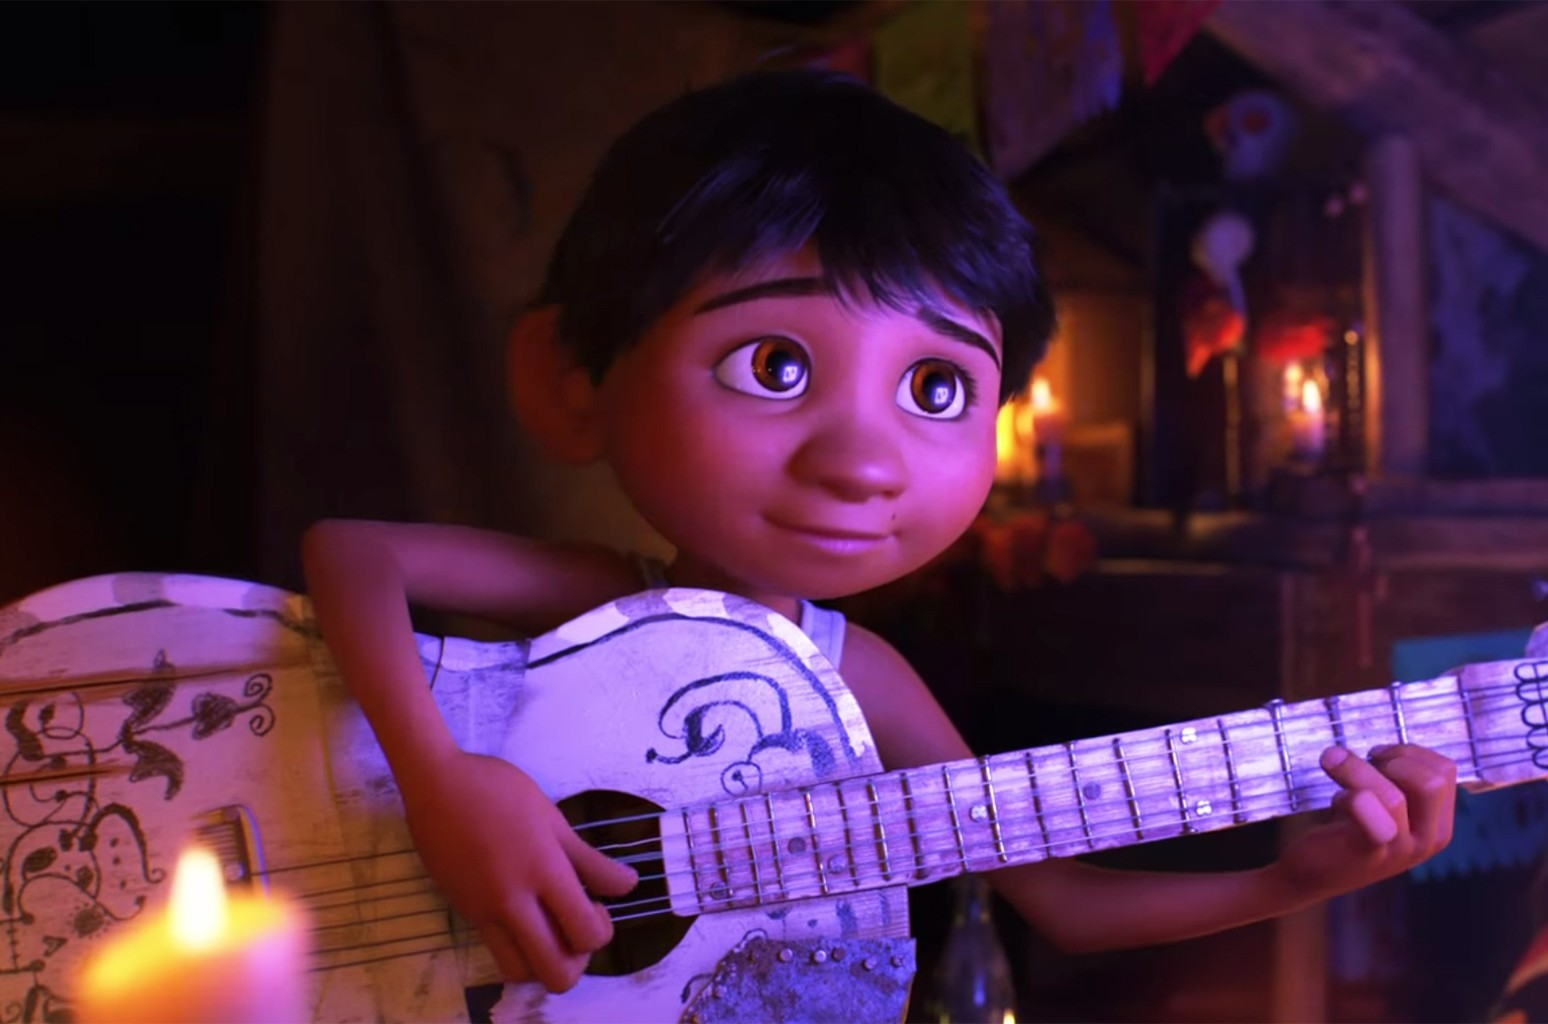 Disney Pixar S Mexican Music Themed Coco Looks Like Footloose Meets Day Of The Dead In New Trailer Billboard